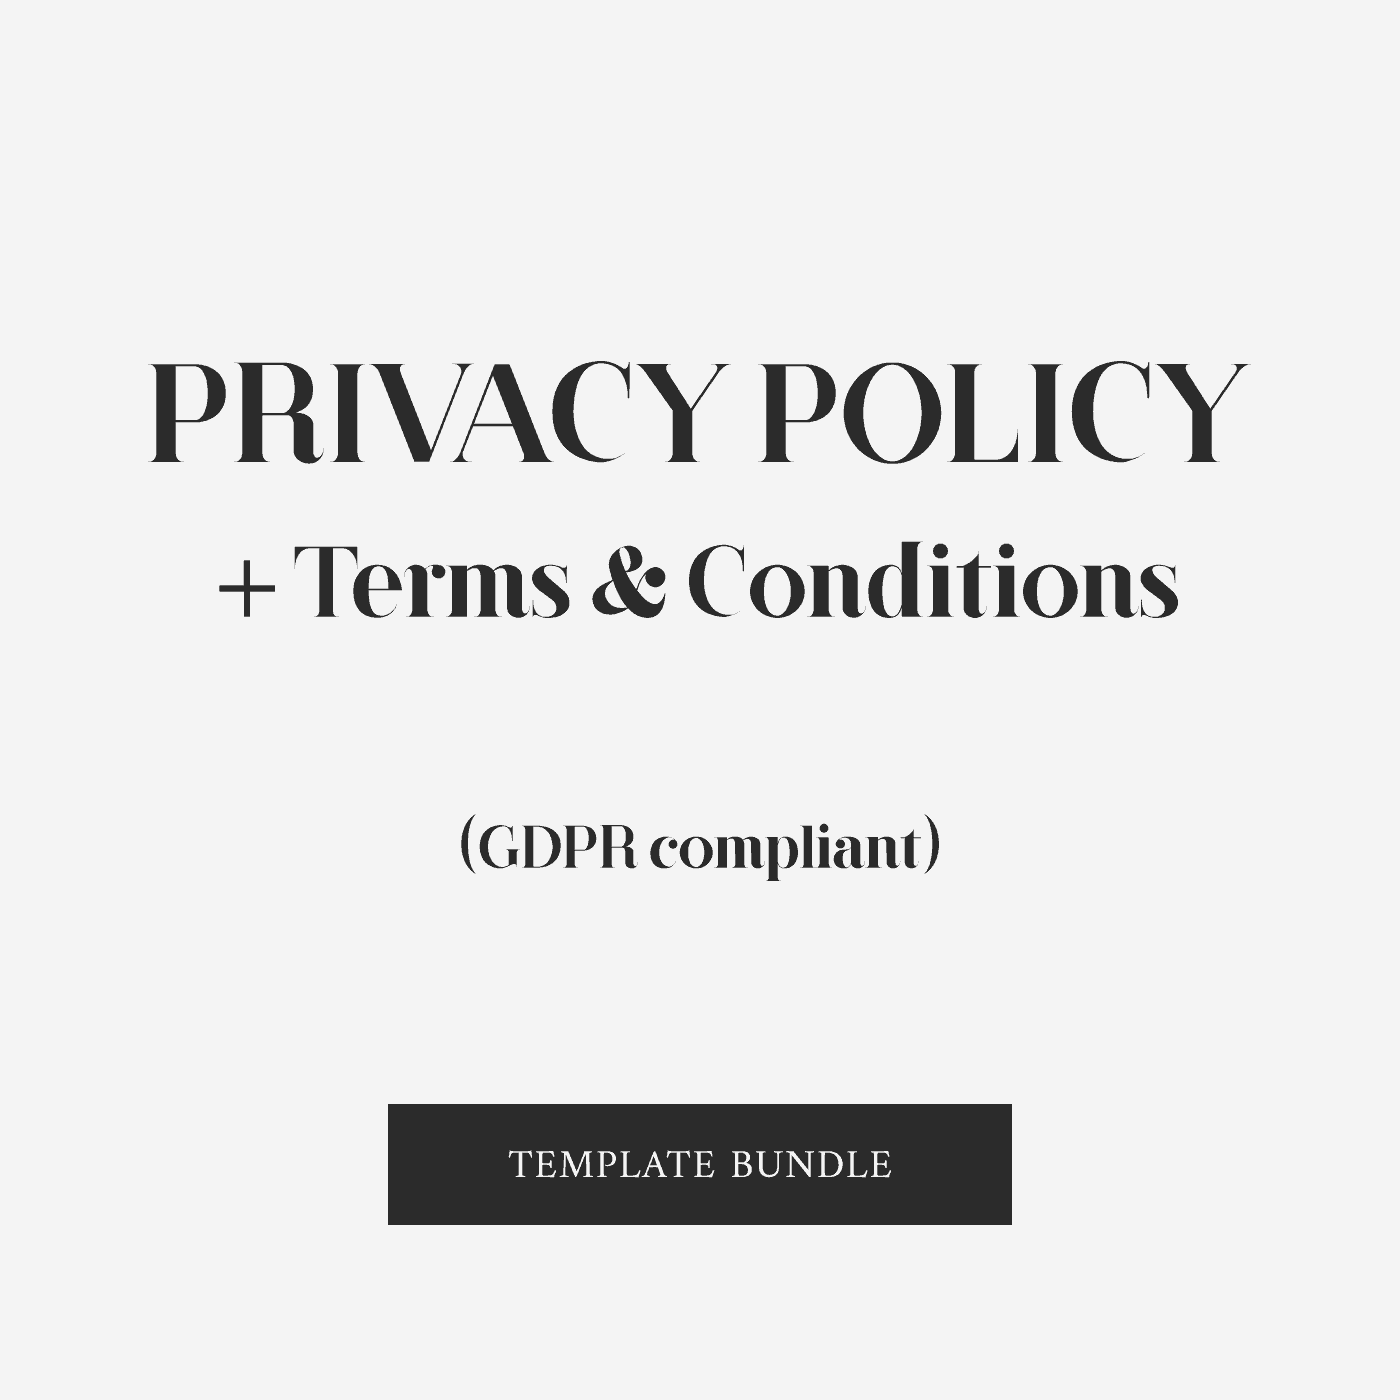 Privacy Policy Terms Amp Conditions Bundle Gdpr Compliant